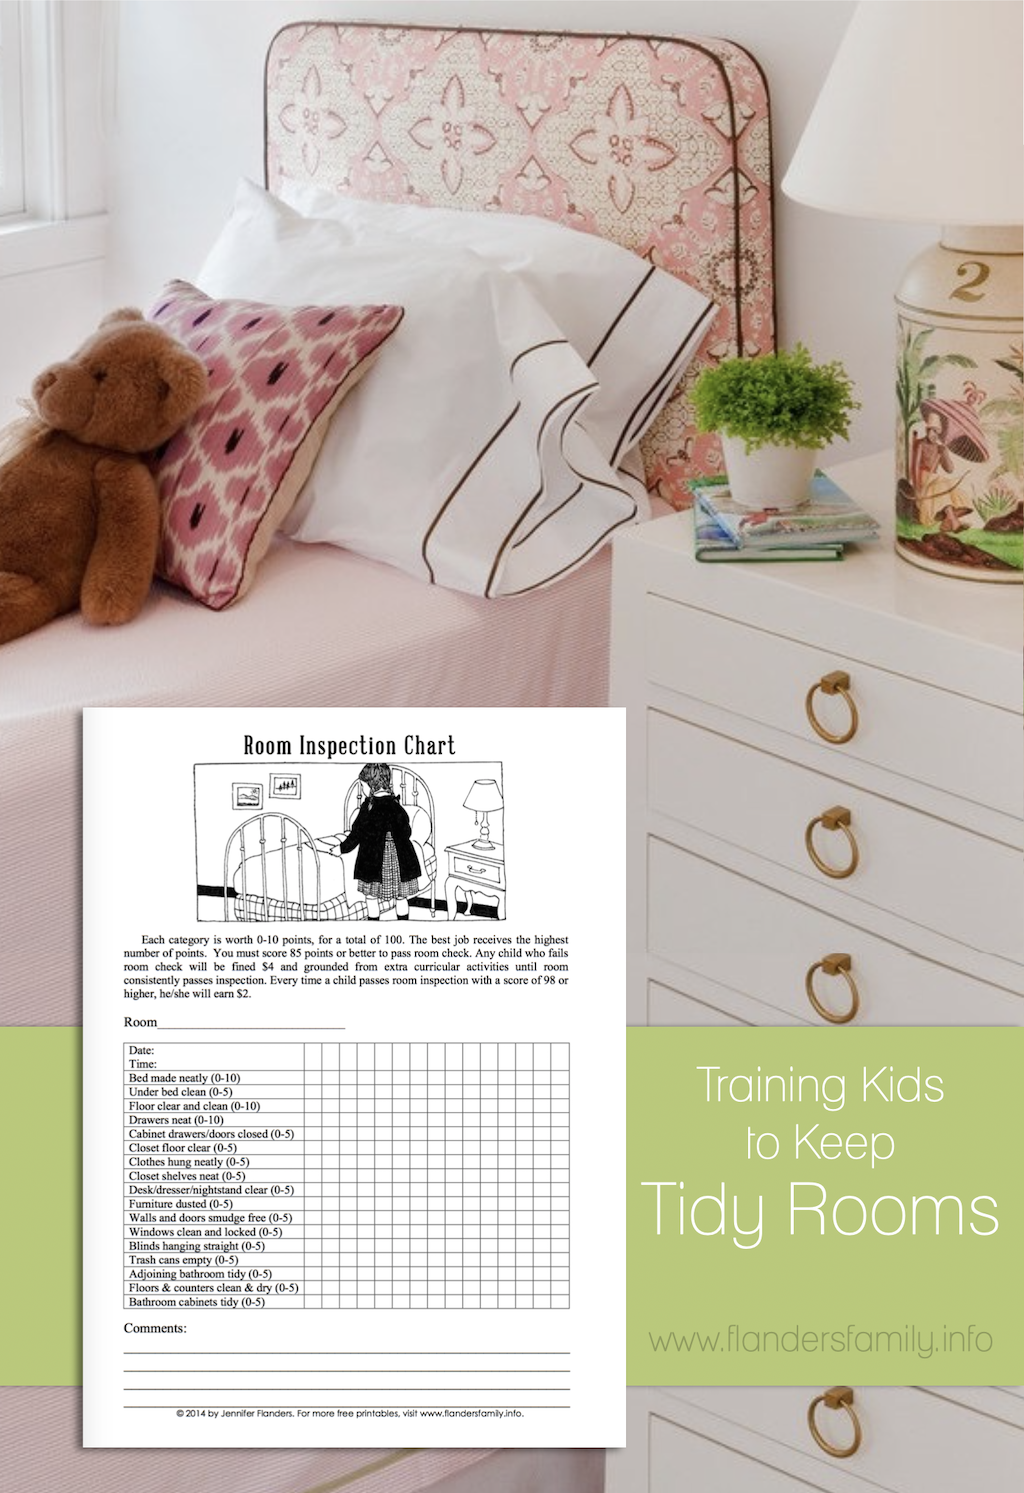 Training Kids to Keep Rooms Tidy